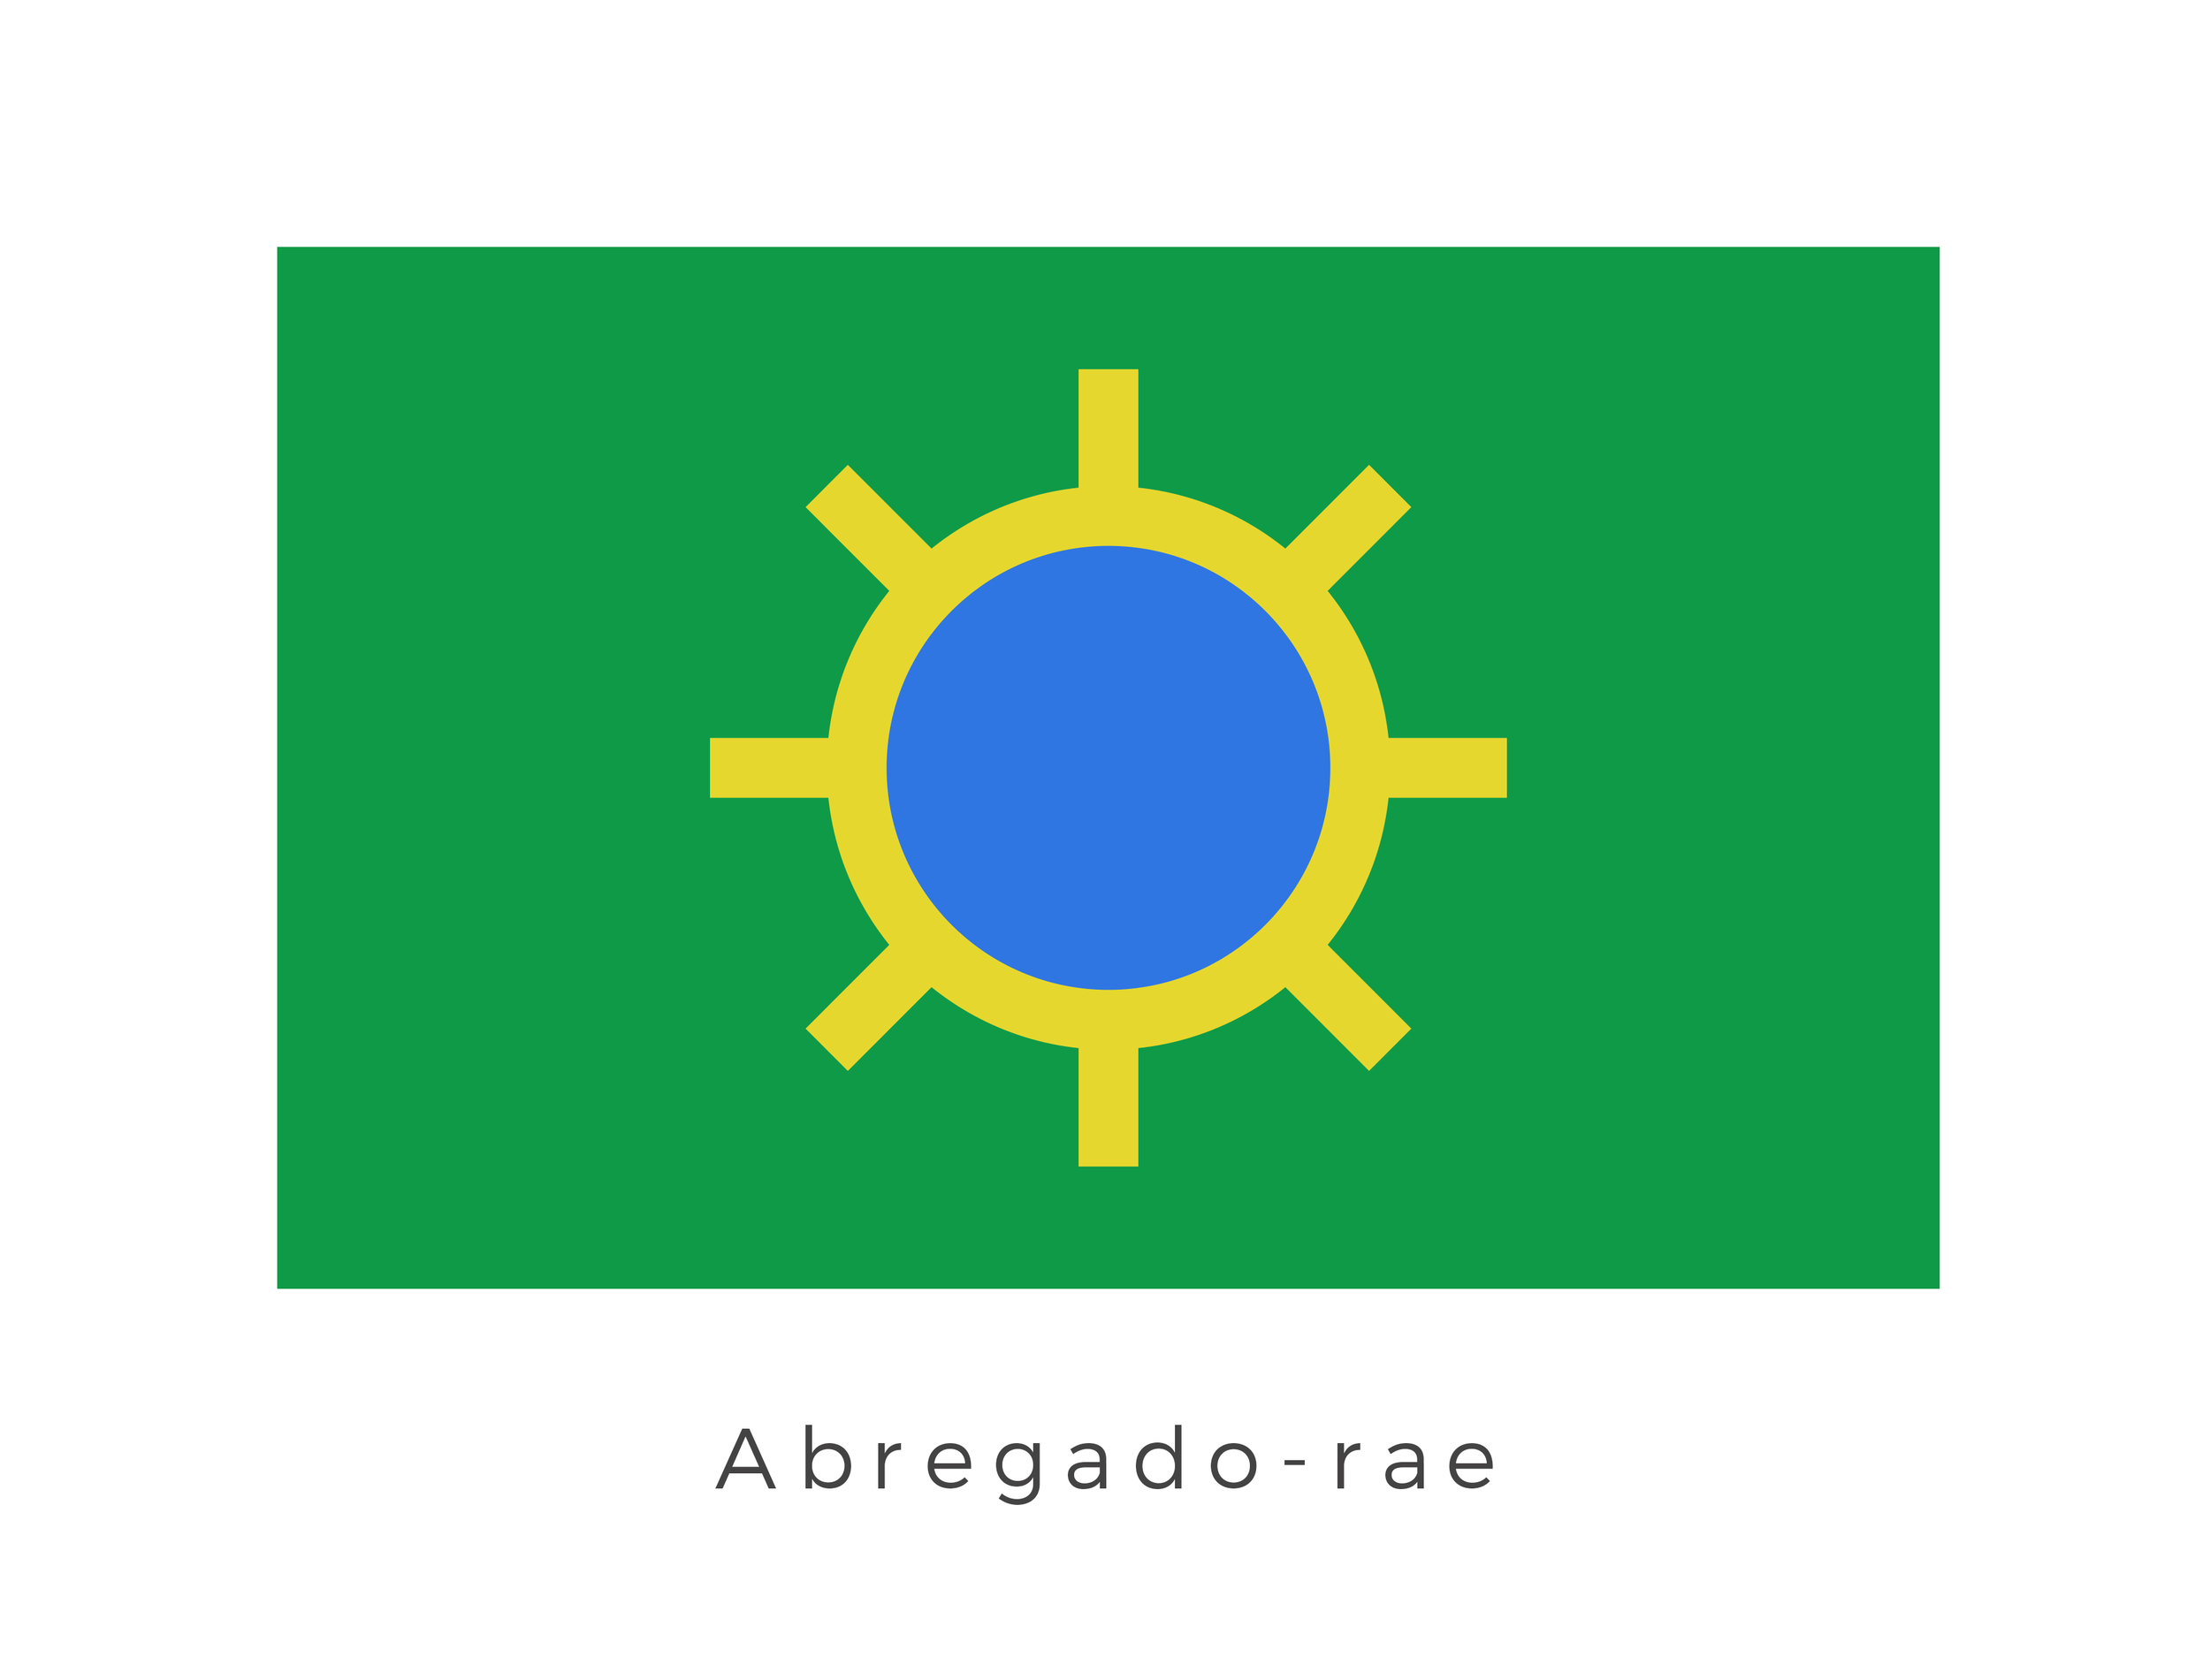 "Abregado-rae  was a major manufacturing and trade-oriented planet, sitting at the beginning of the Rimma Trade Route, and was also the starting point for the Shapani Bypass or the ""Bacta Run"". It's temperate climate was represented by the green surface of the flag as well as its blue centre. The yellow sun like graphic was in fact a signified of its main export - technology."